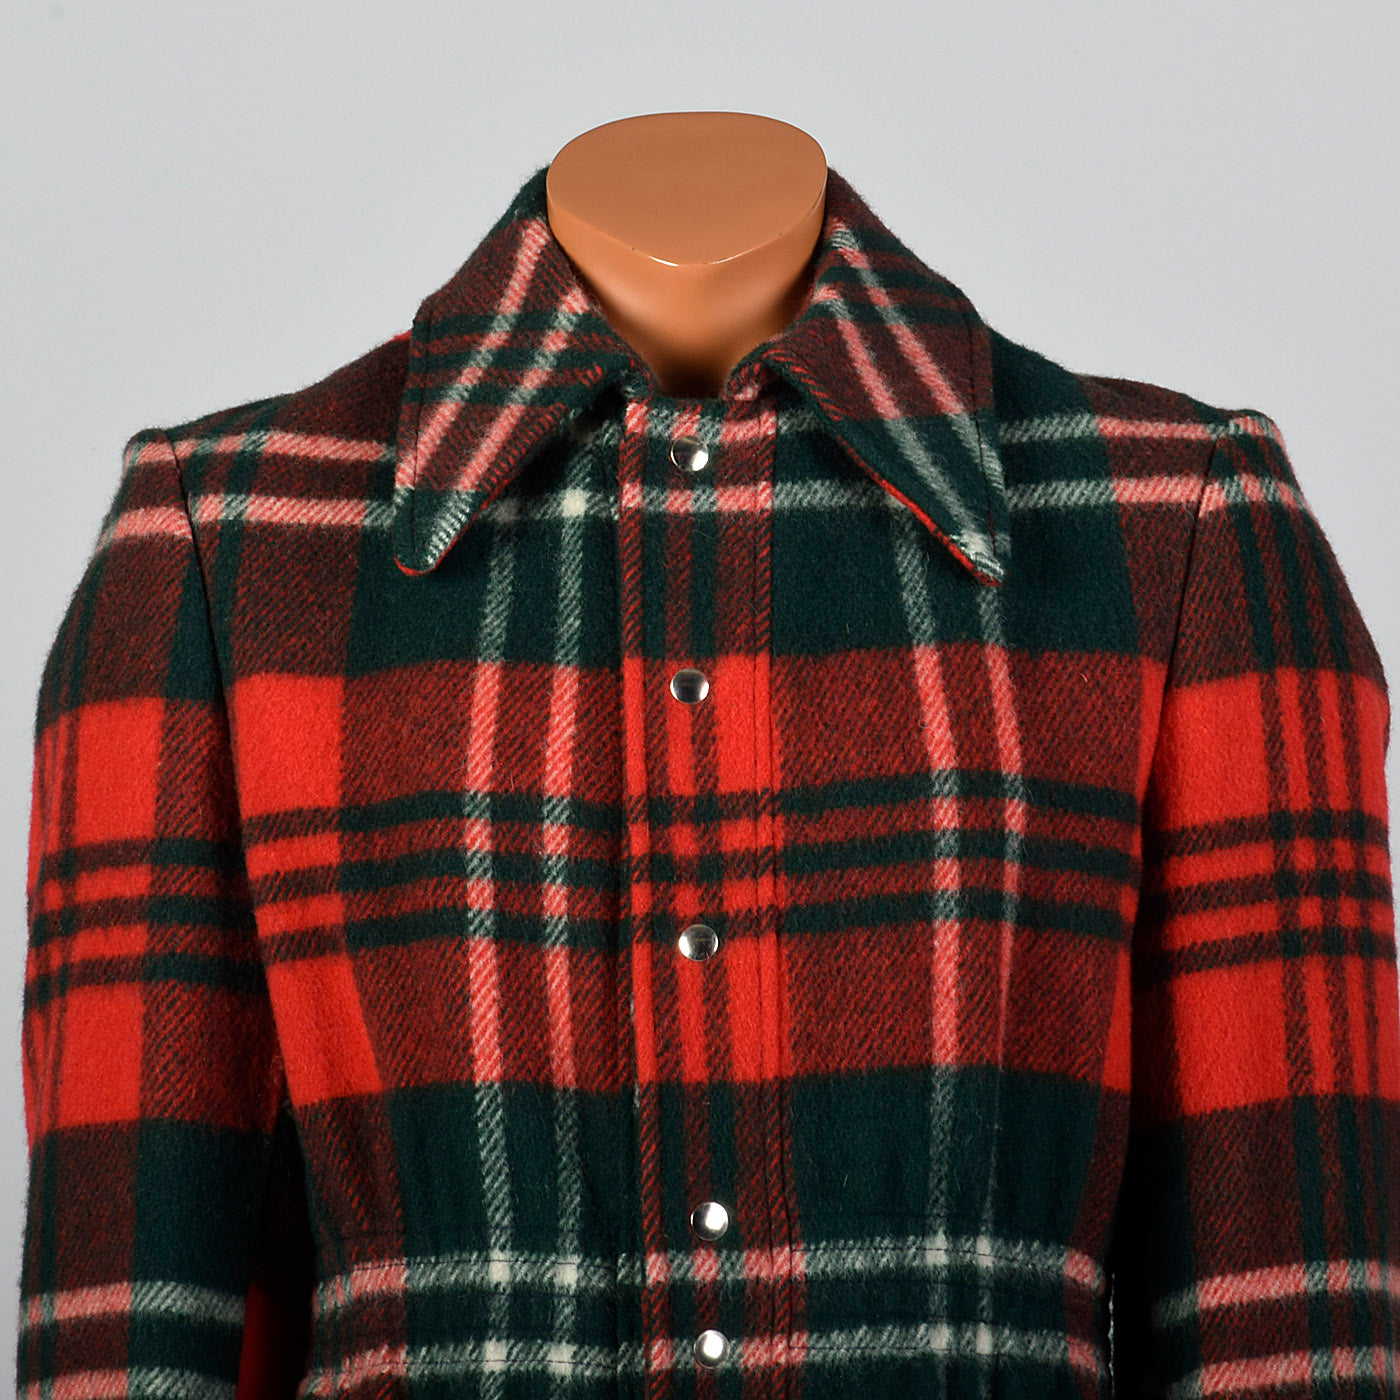 1970s Mens Wool Coat in Red and Green Plaid